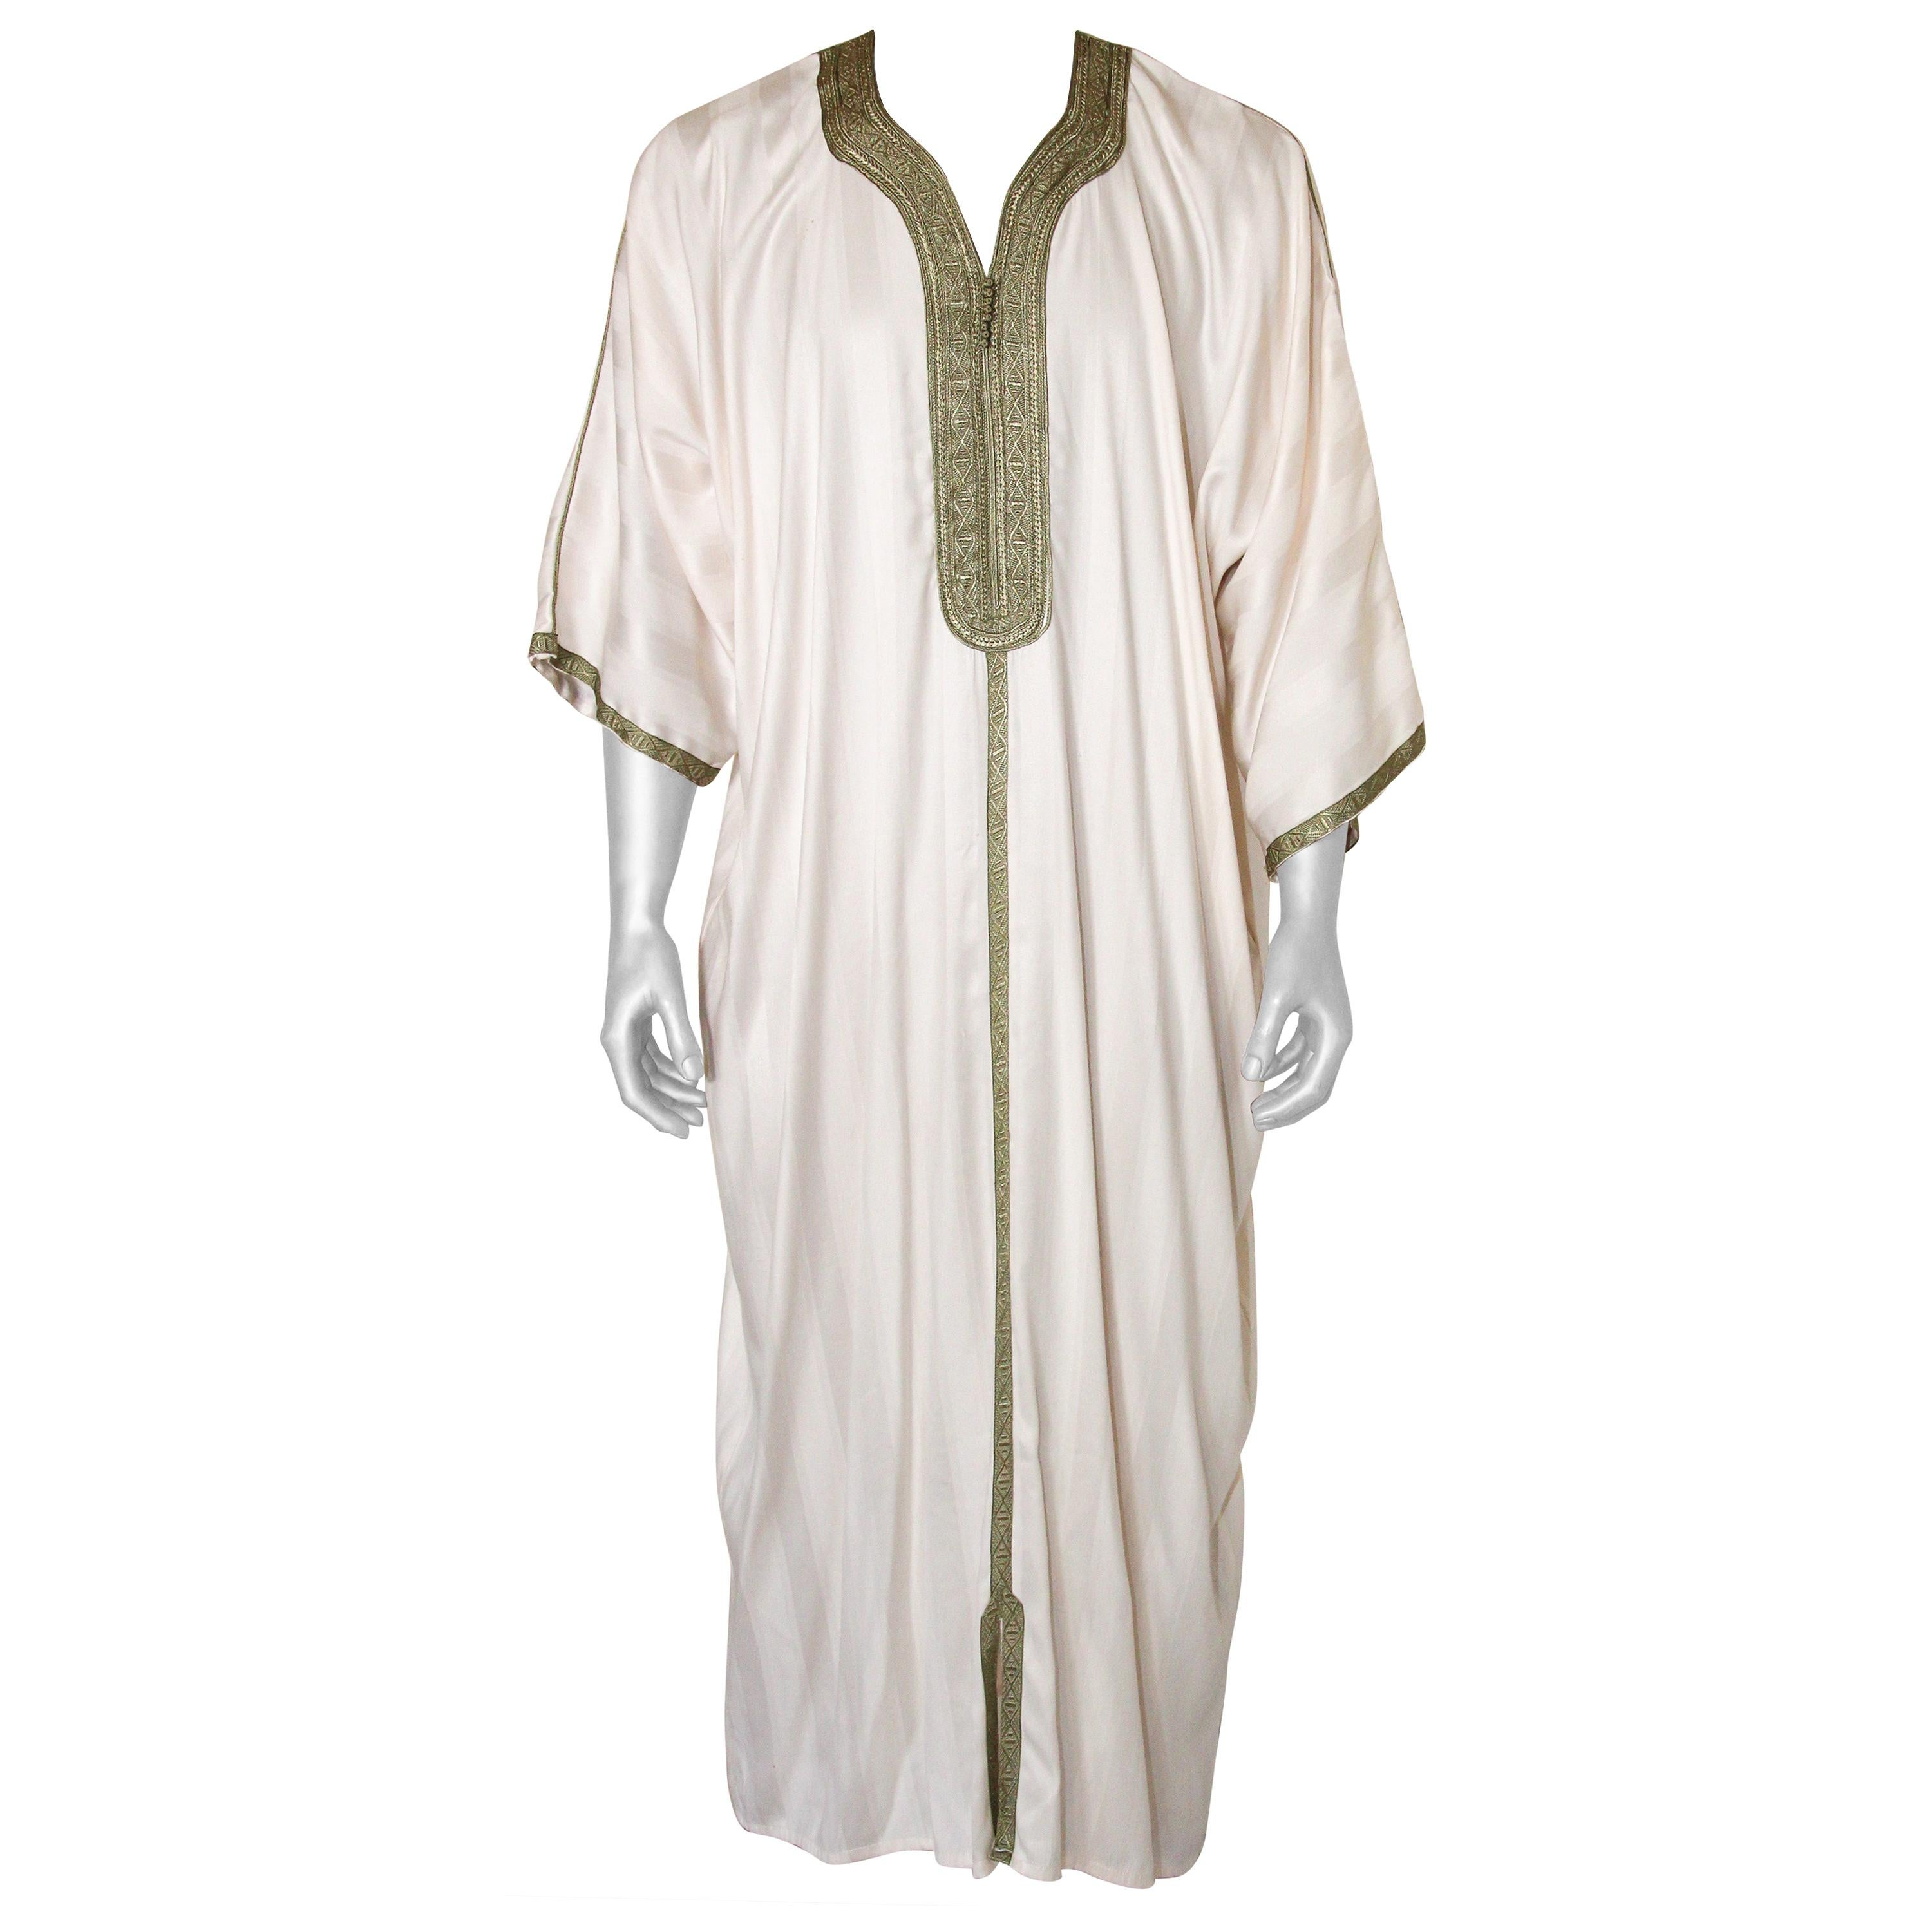 Moroccan Vintage Gentleman Caftan White with Green Trim